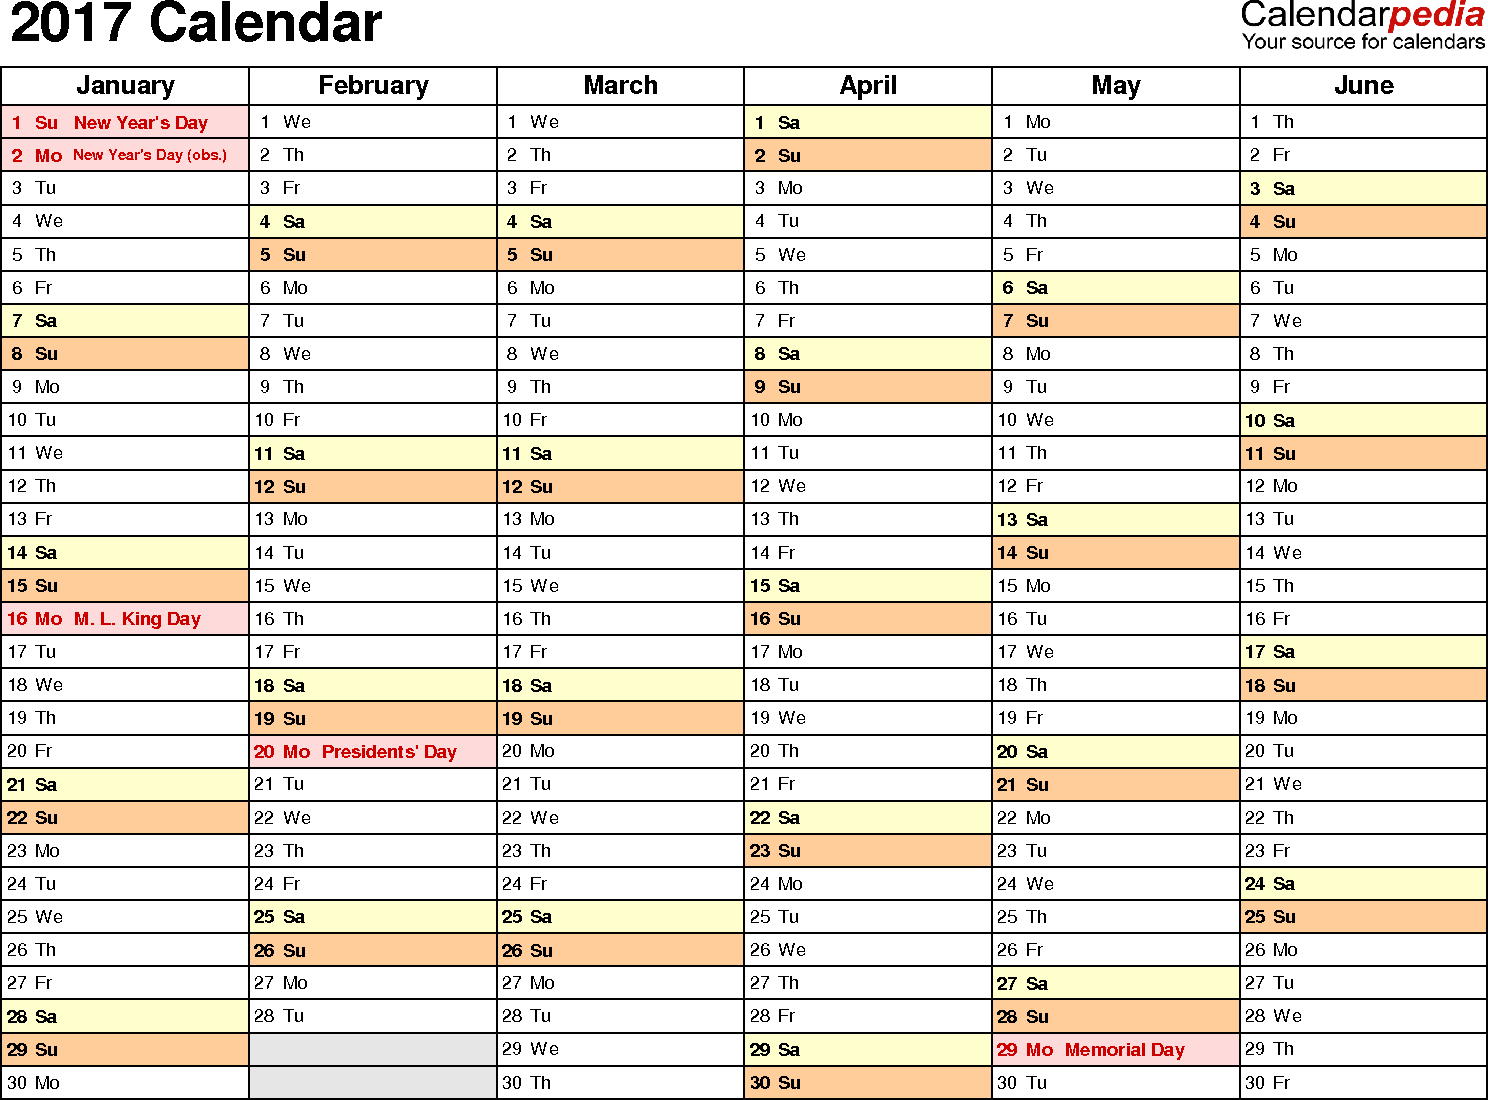 Ediblewildsus  Remarkable  Calendar  Download  Free Printable Excel Templates Xls With Handsome Template   Calendar For Excel Months Horizontally  Pages Landscape Orientation With Charming Excel Quote Template Also Create Excel Macro In Addition Create Line Graph In Excel And Difference Between Two Dates In Excel As Well As Short Date Format Excel Additionally Pmt In Excel From Calendarpediacom With Ediblewildsus  Handsome  Calendar  Download  Free Printable Excel Templates Xls With Charming Template   Calendar For Excel Months Horizontally  Pages Landscape Orientation And Remarkable Excel Quote Template Also Create Excel Macro In Addition Create Line Graph In Excel From Calendarpediacom